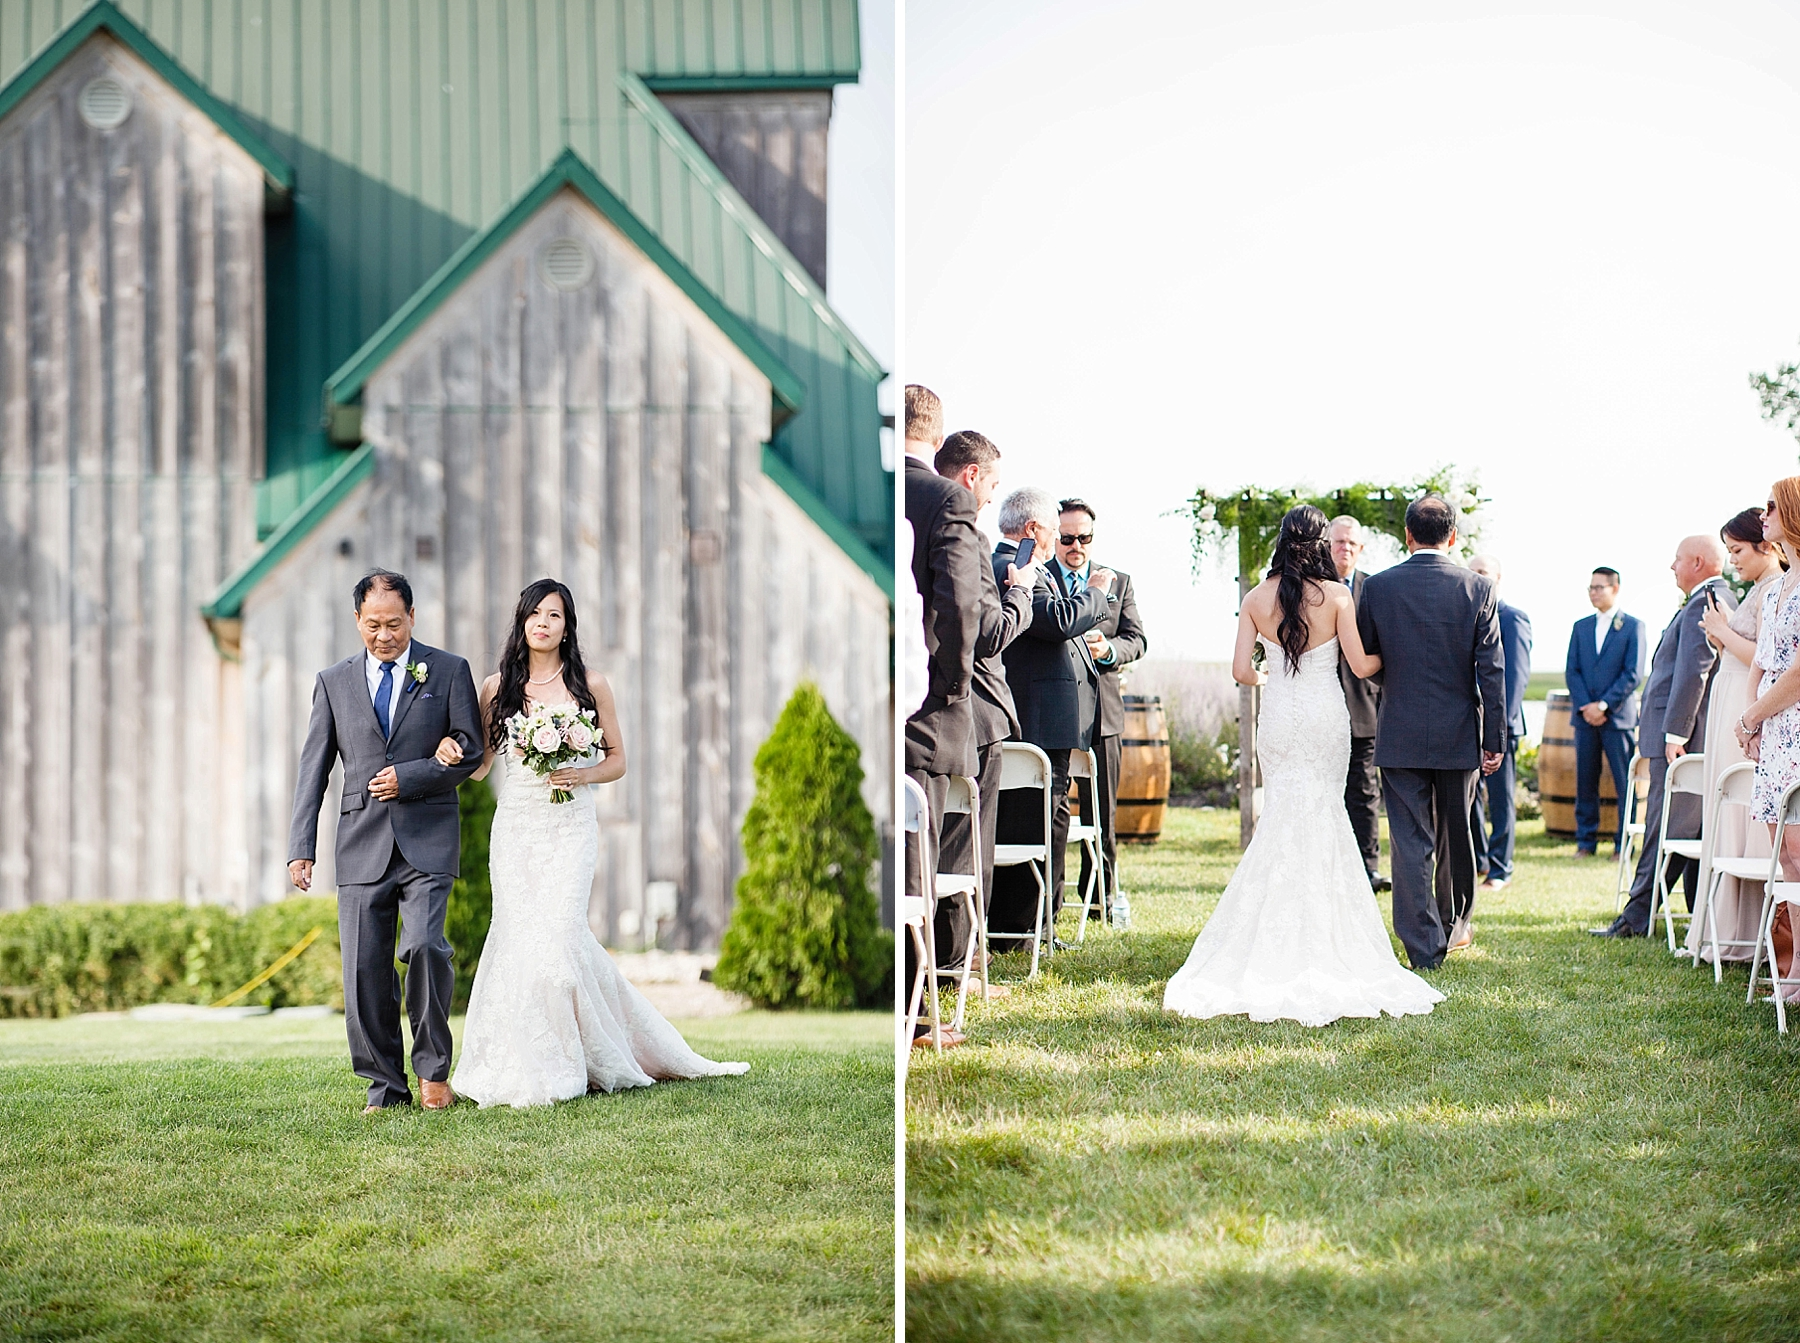 windsor-wedding-photographer-winery-wedding-ontario-sprucewood-shores-niagara-on-the-lake-wedding-photography-eryn-shea-photography_0038.jpg